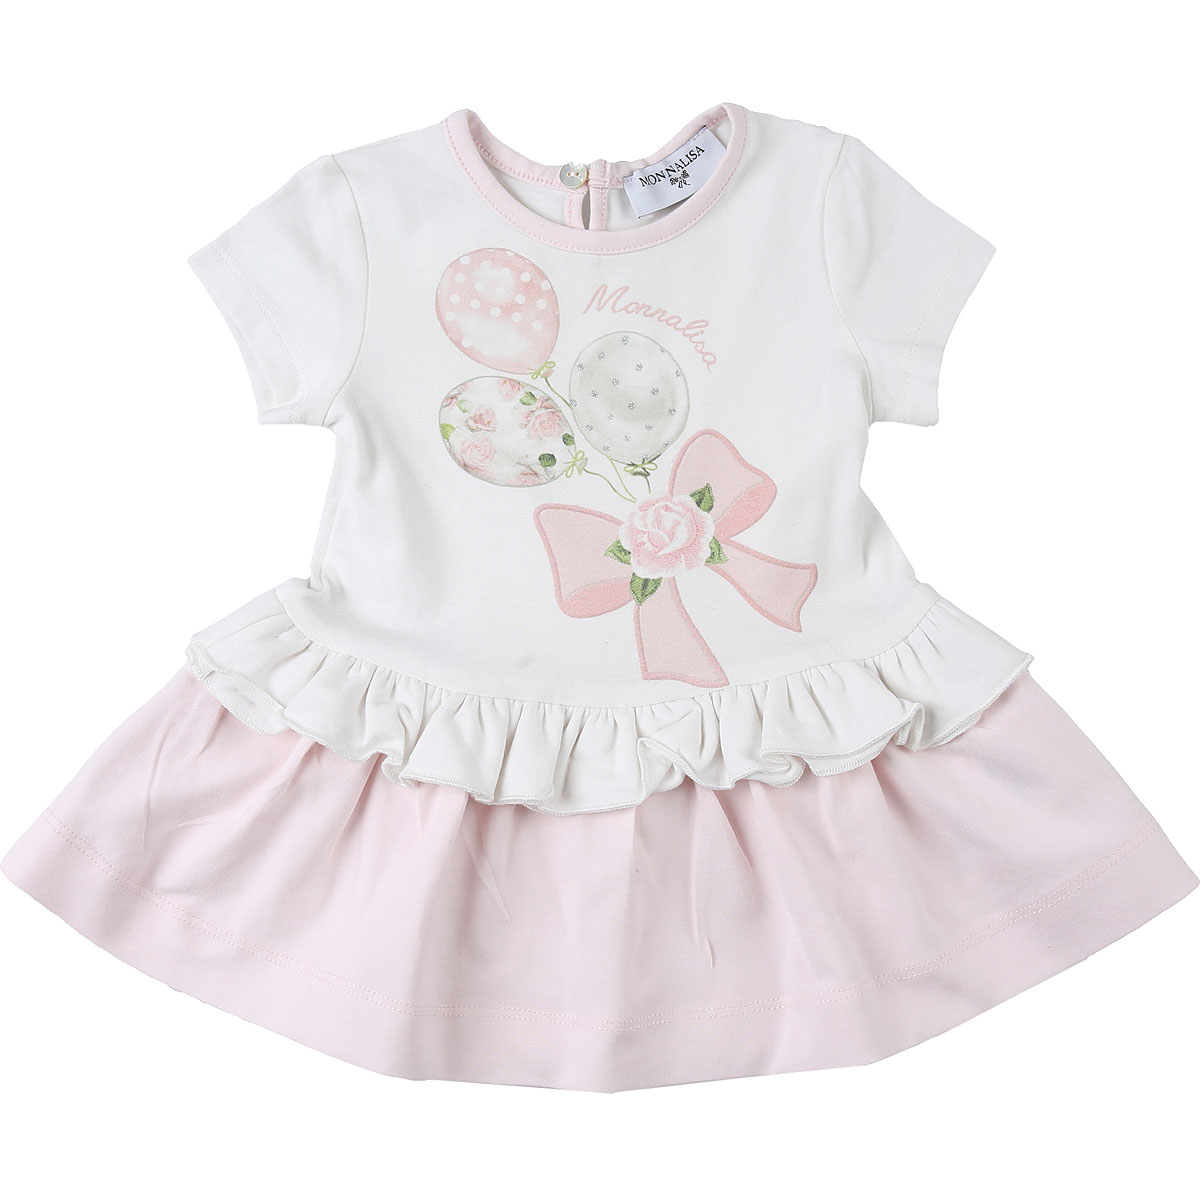 Monnalisa Baby Dress for Girls On Sale, White, Cotton, 2019, 2Y 3M 6M